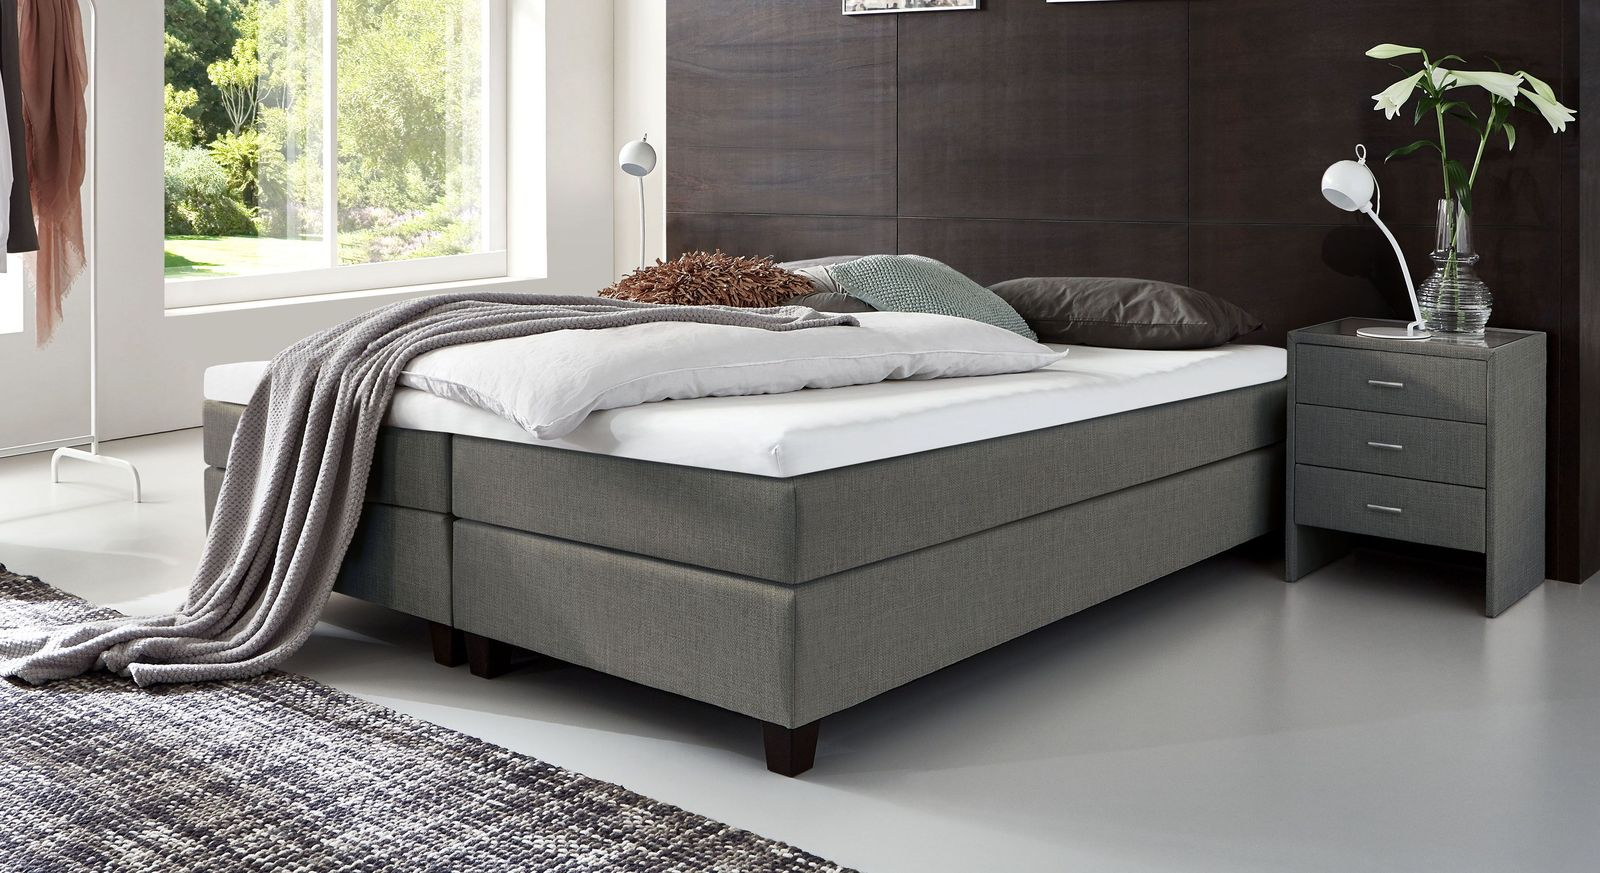 53 cm hohe Boxspringliege Luciano aus meliertem Webstoff in Grau